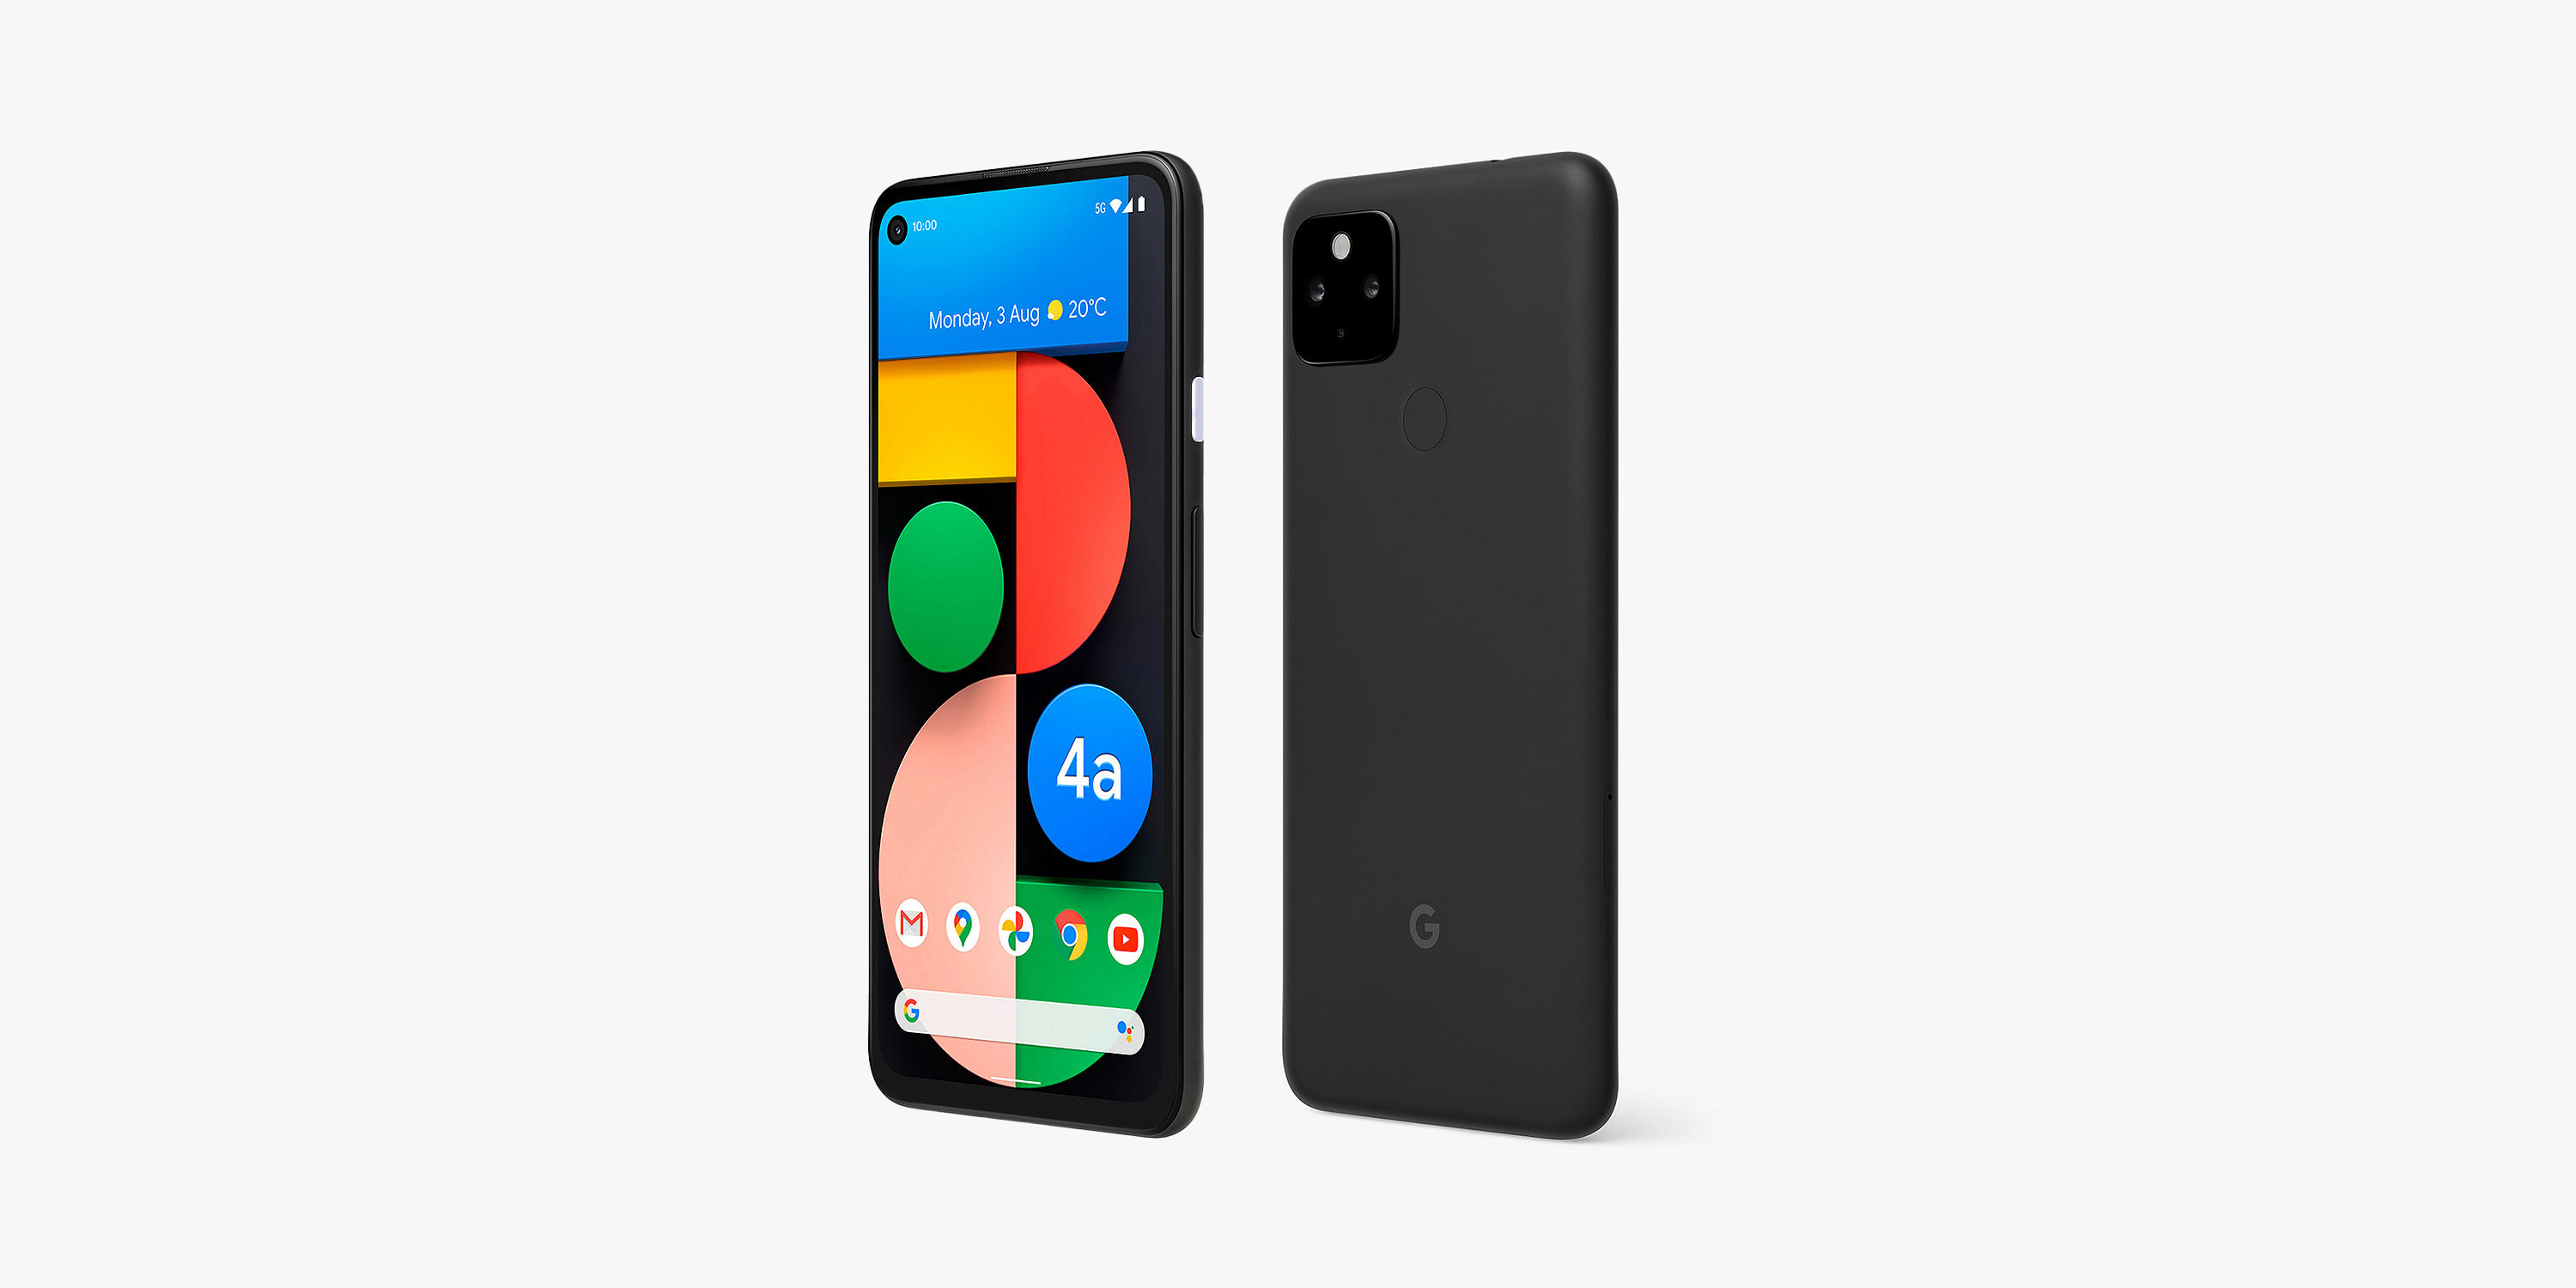 Pixel 4a 5G leaks in official renders showcasing polycarbonate design, more [Gallery] - 9to5Google